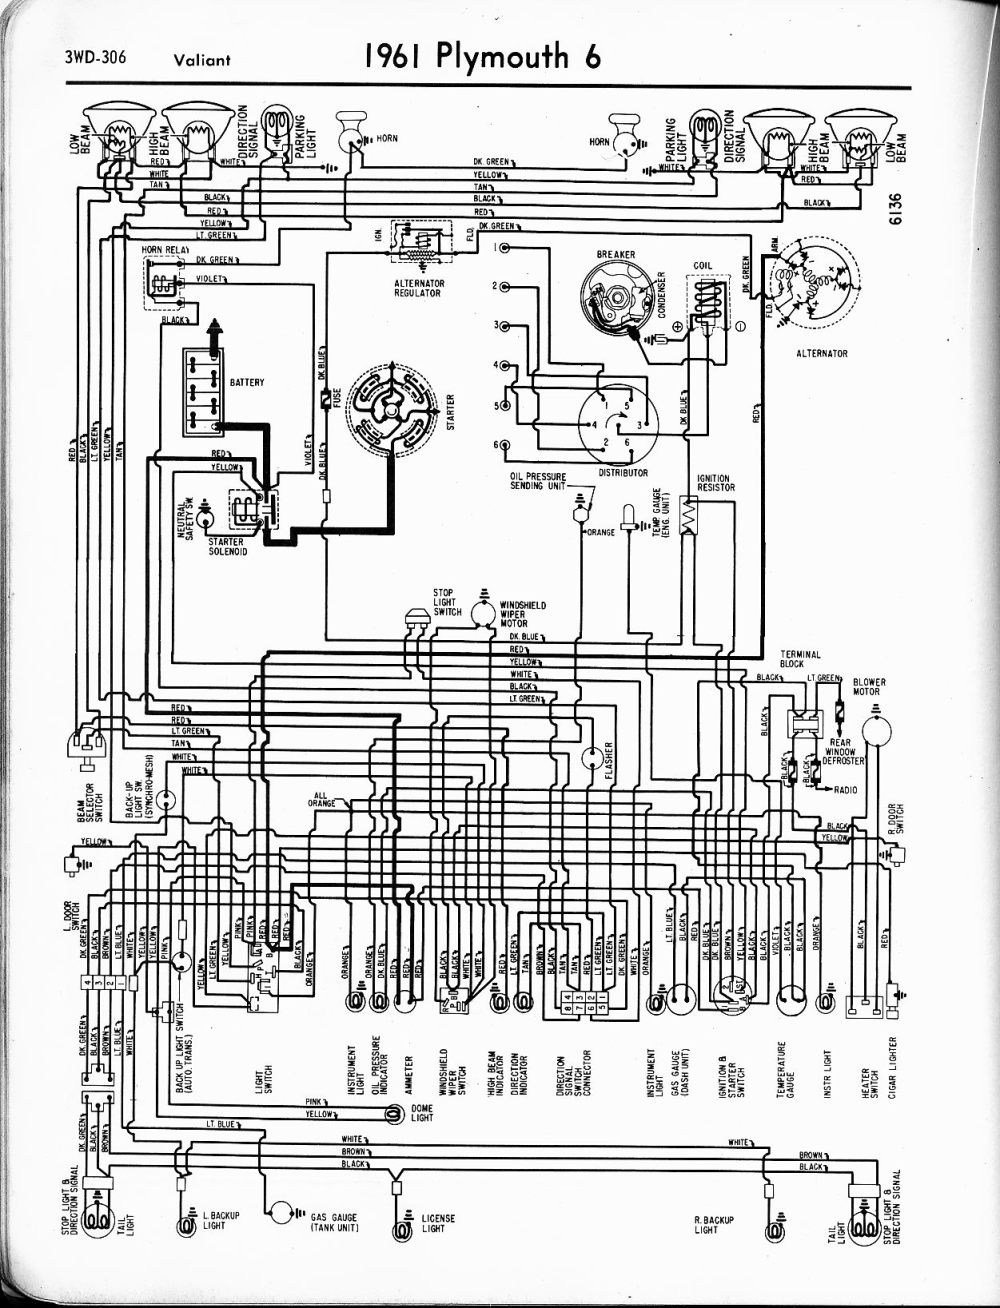 medium resolution of 1956 1965 plymouth wiring the old car manual project wiring diagrams of 1962 plymouth 6 valiant